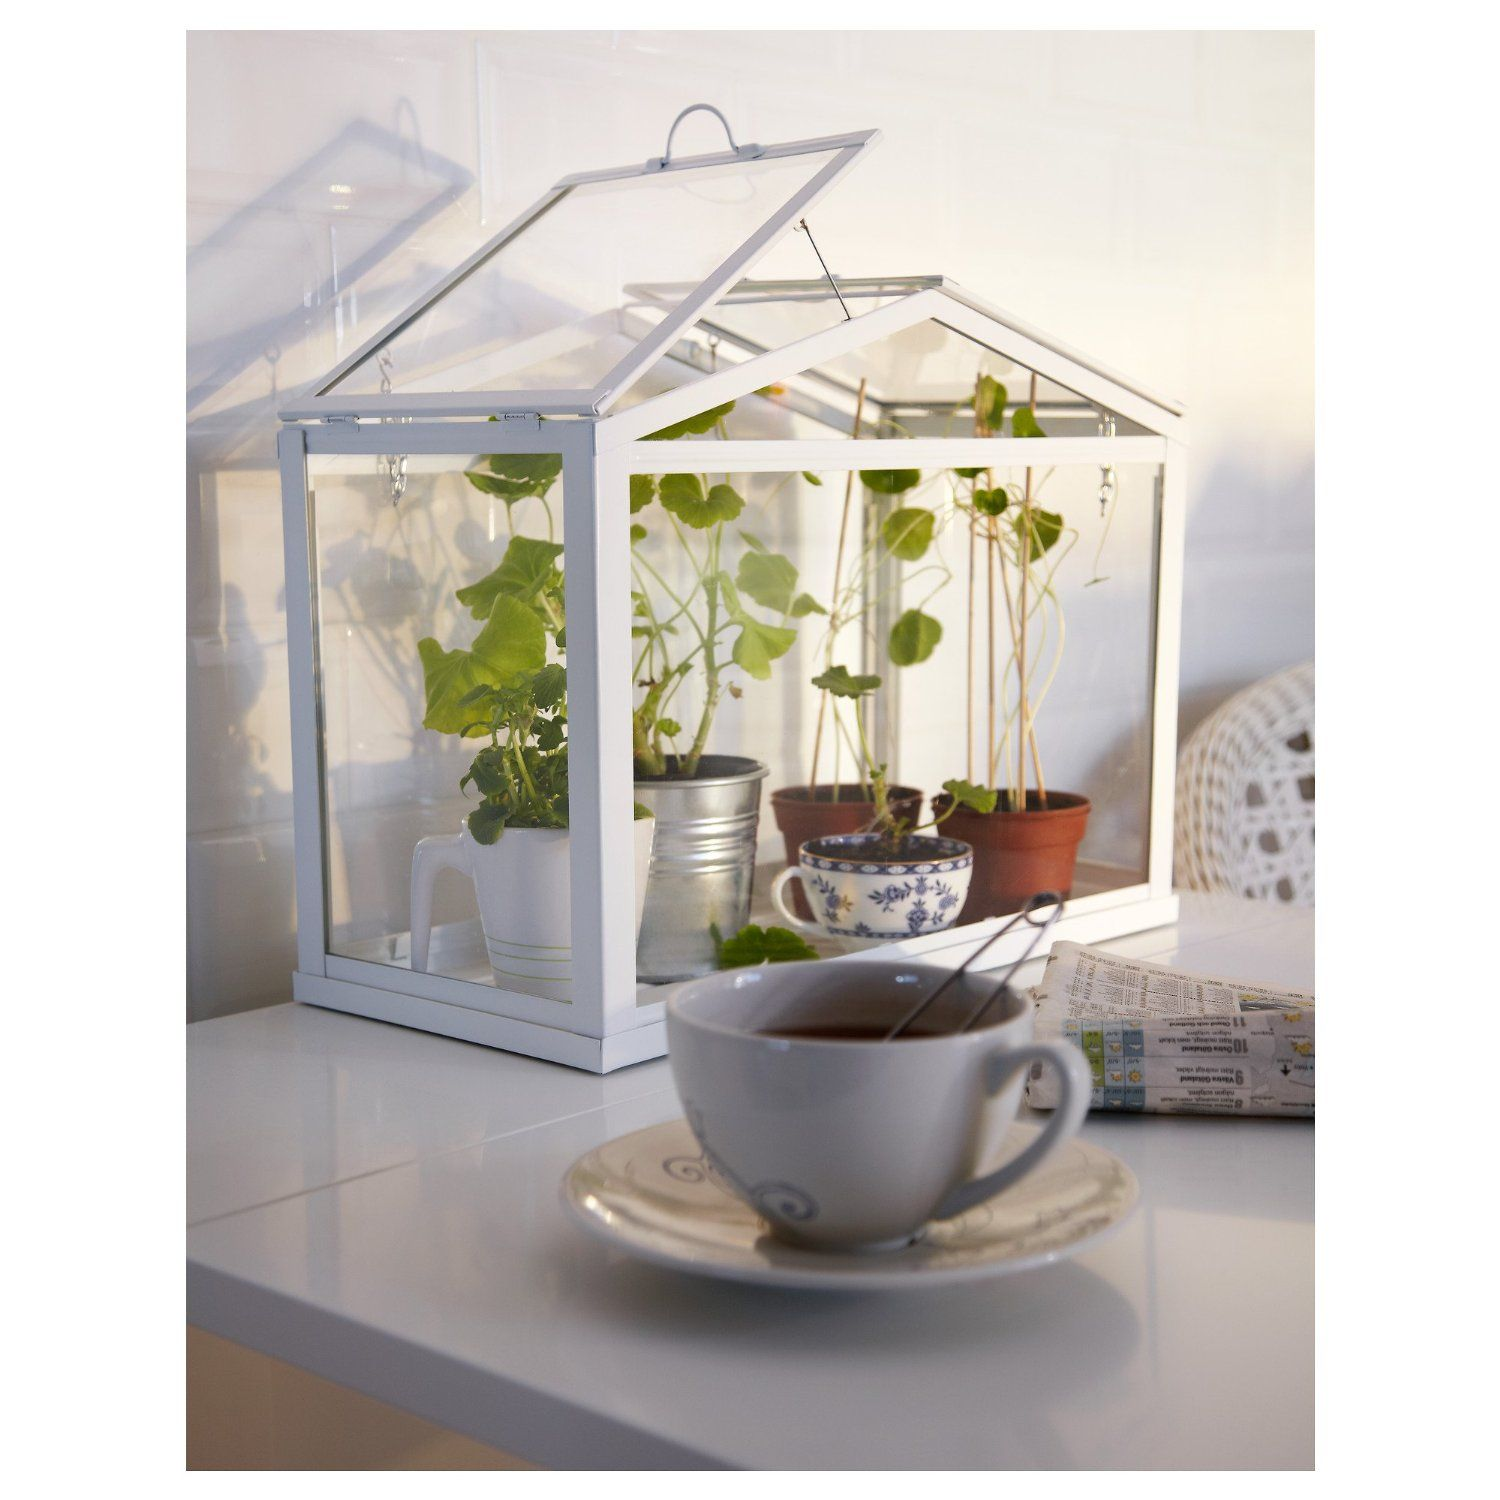 amazon : ikea greenhouse, indoor/outdoor, white : patio, lawn